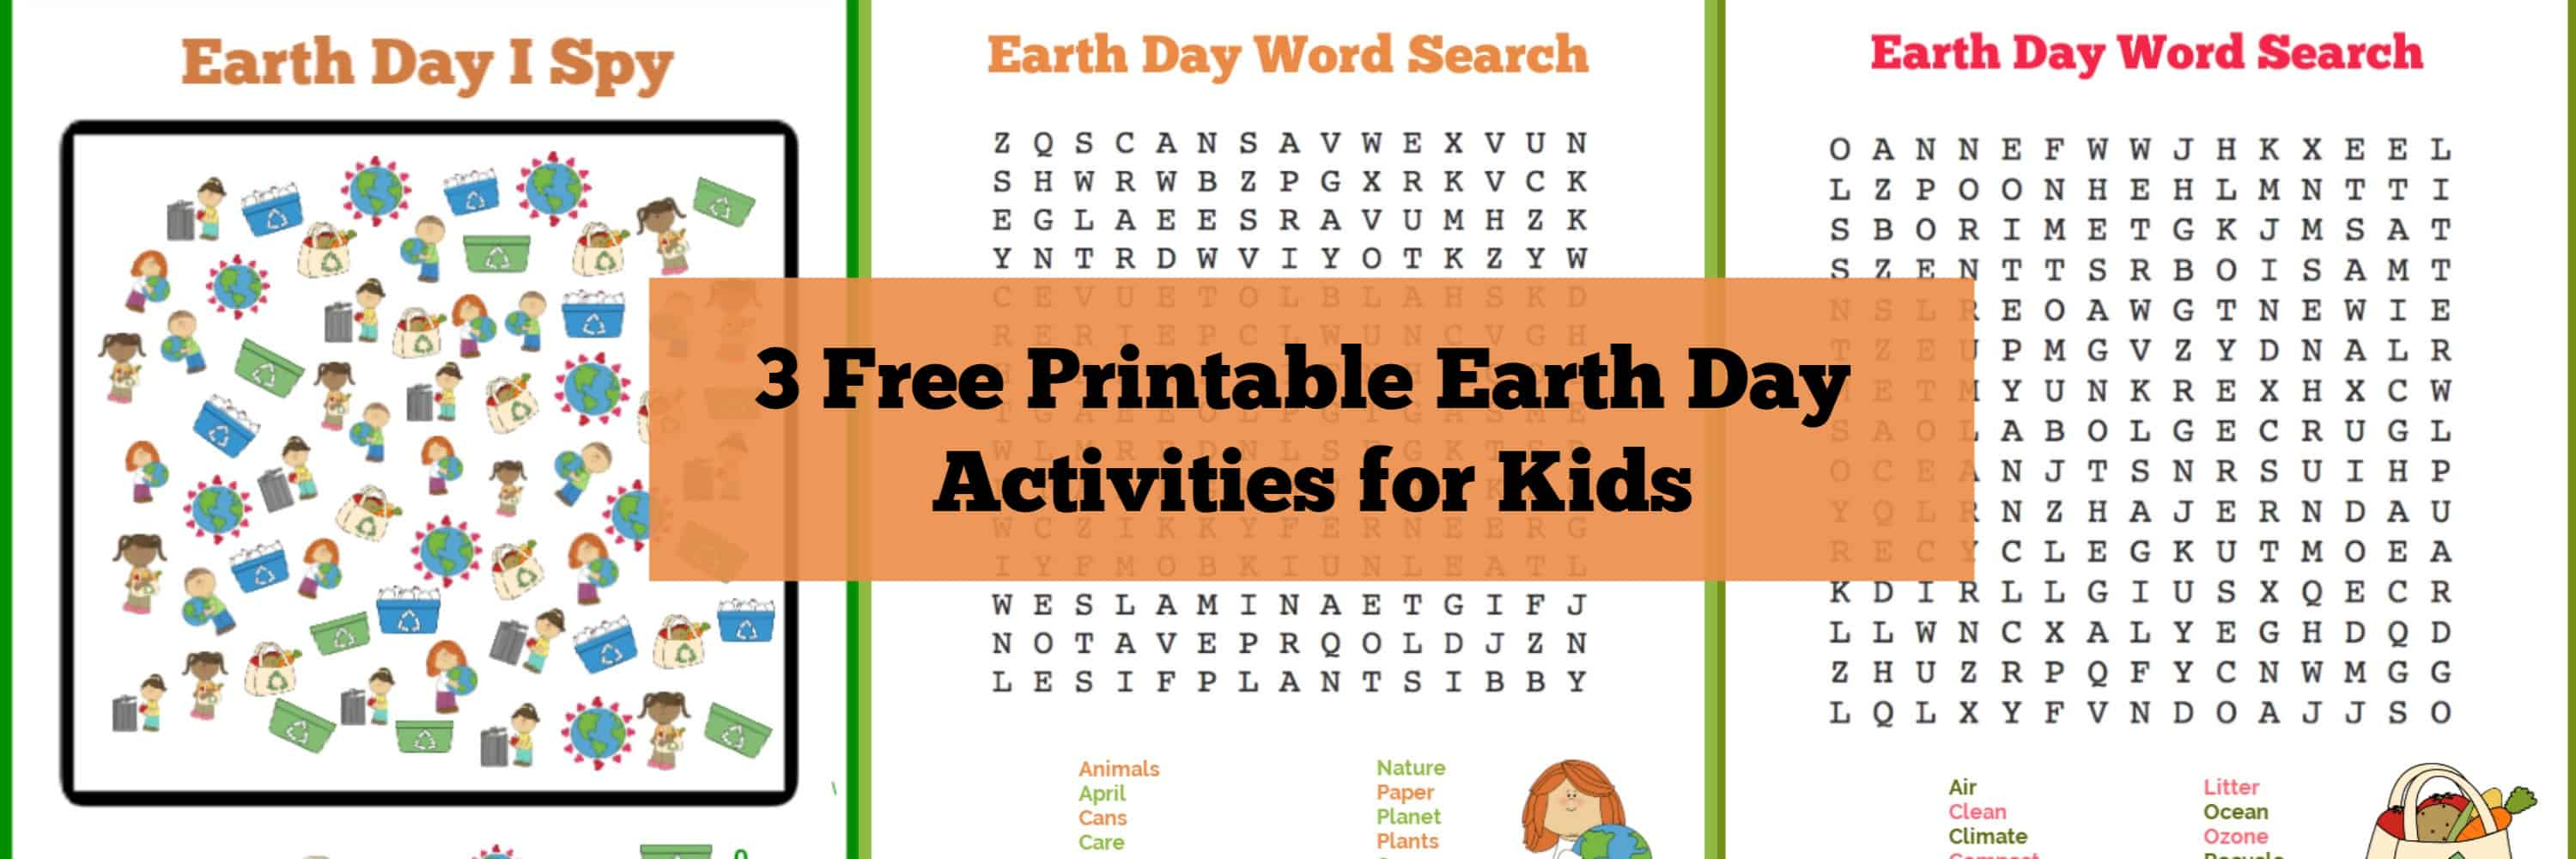 Earth Day Printable Activities Word Searches And I Spy